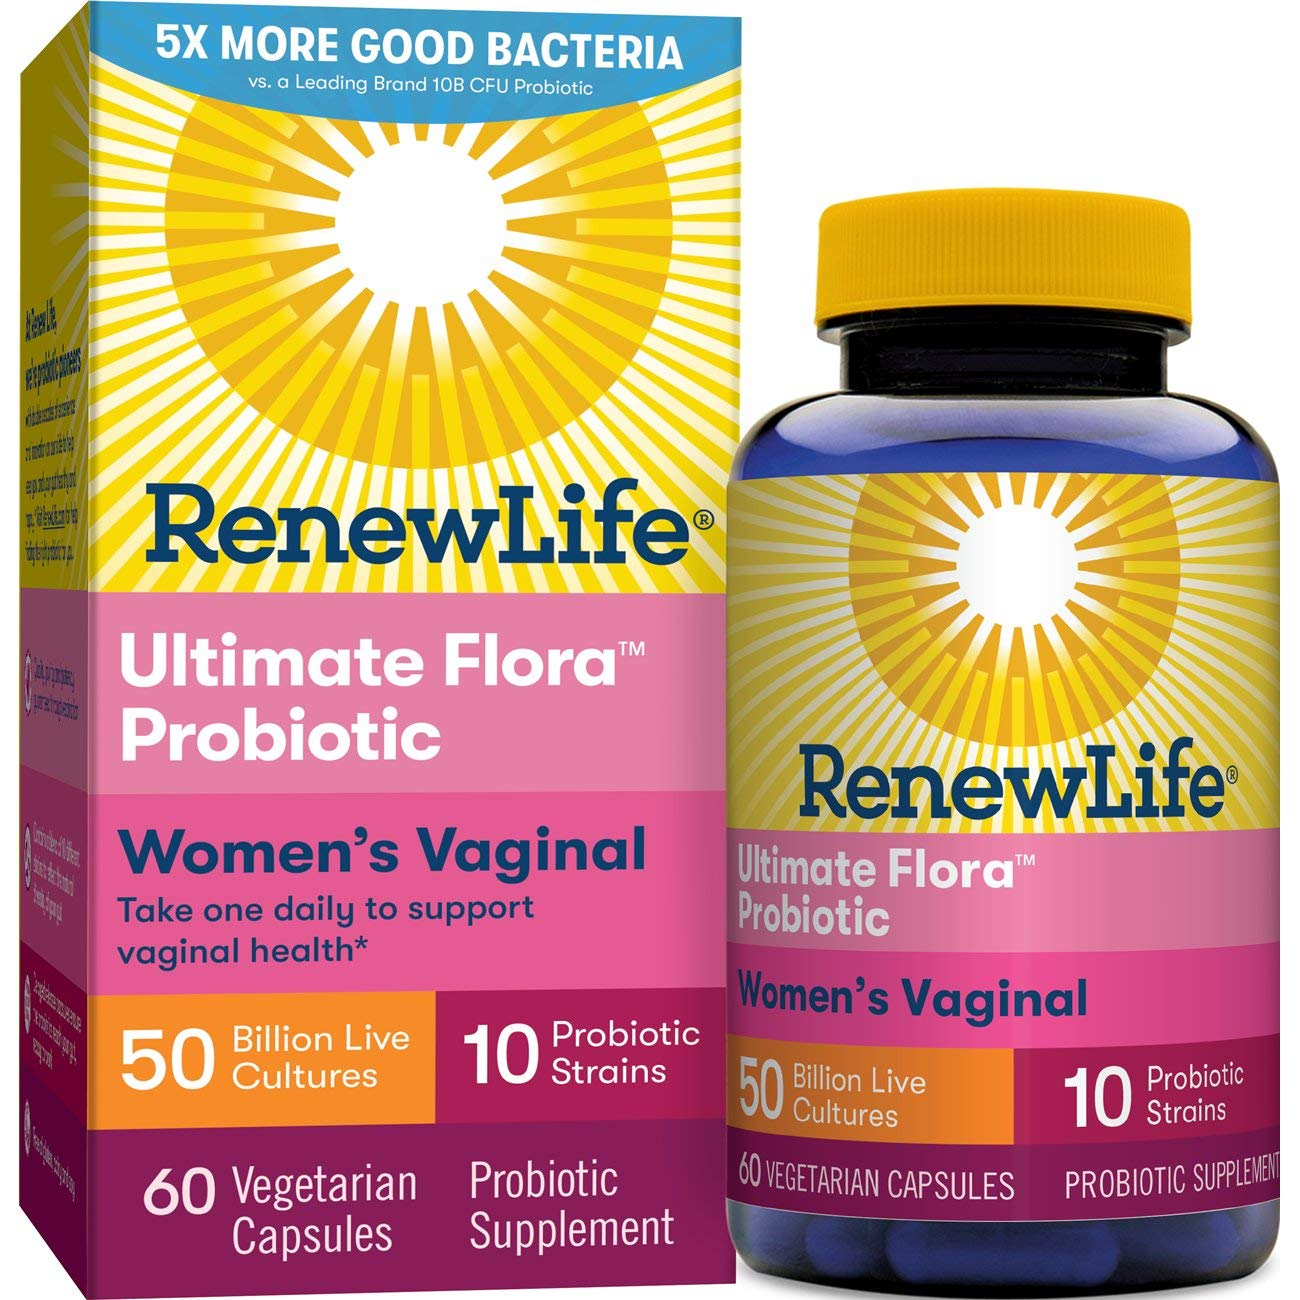 Renew Life Women's Probiotic - Ultimate Flora  Women's Vaginal Probiotic Supplement - Gluten, Dairy & Soy Free - 50 Billion CFU - 60 Vegetarian Capsules by Renew Life